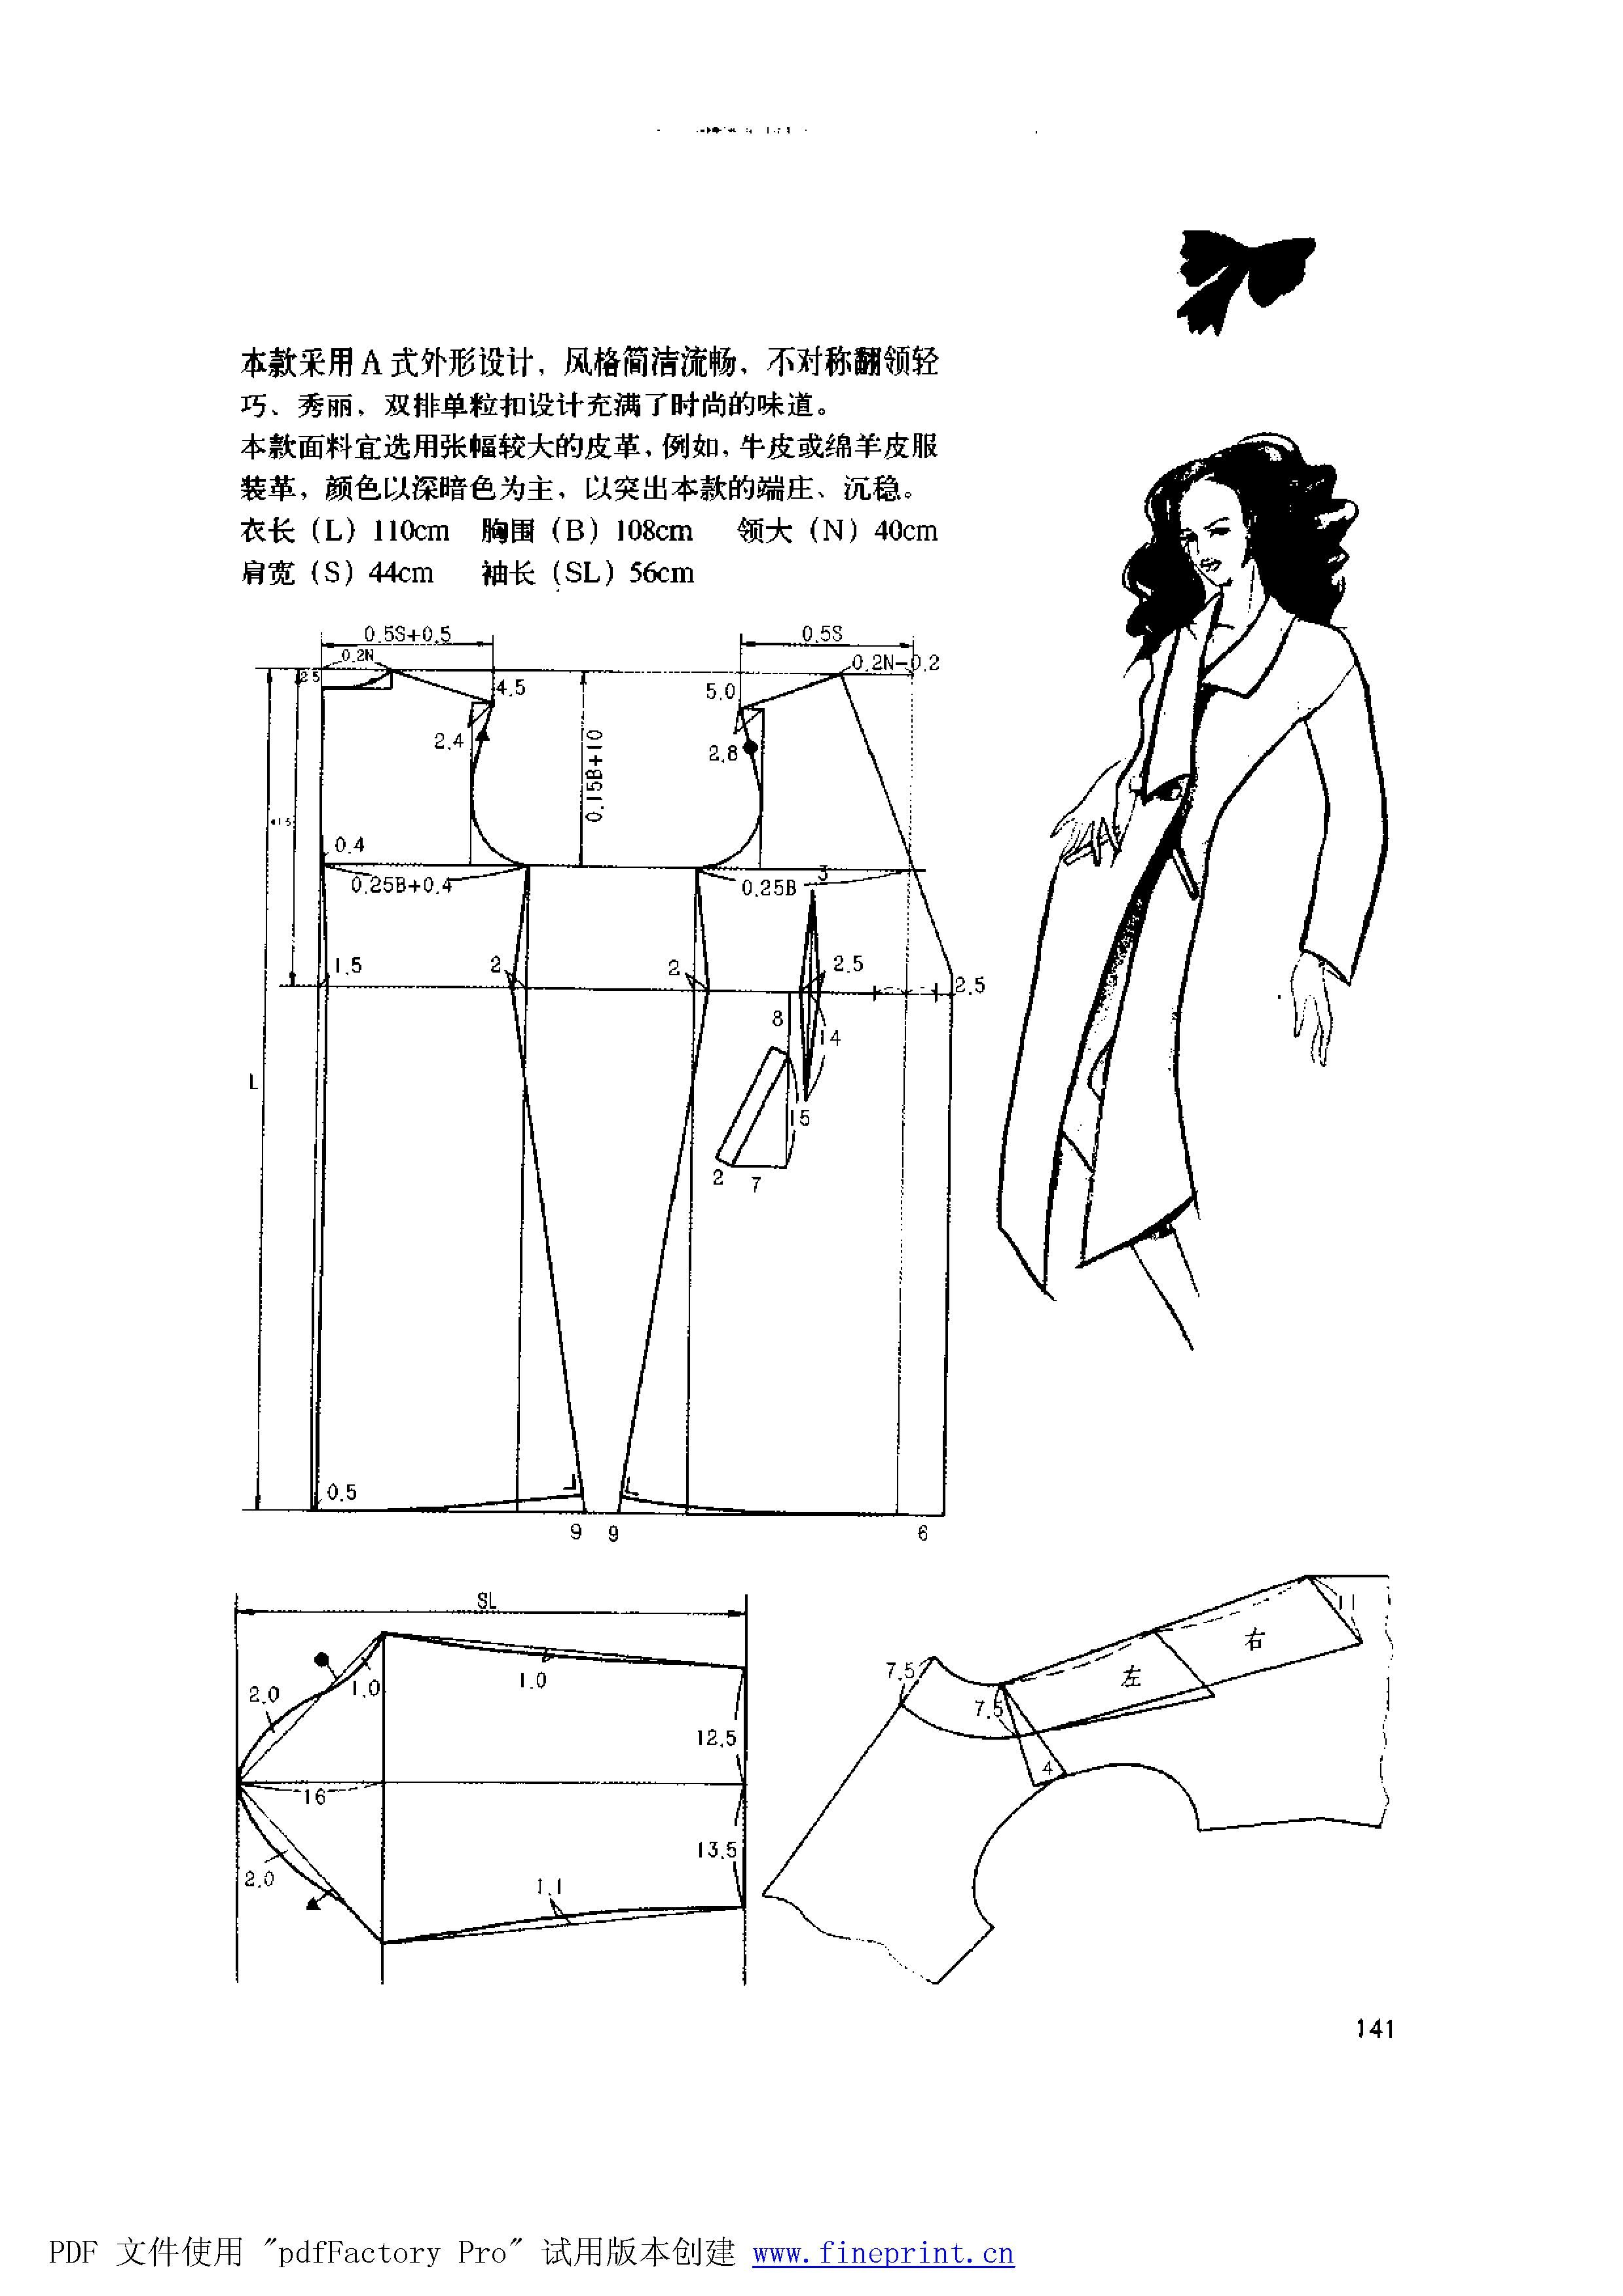 Leather Garments Sewing Dressmaking Patternmaking Cucire